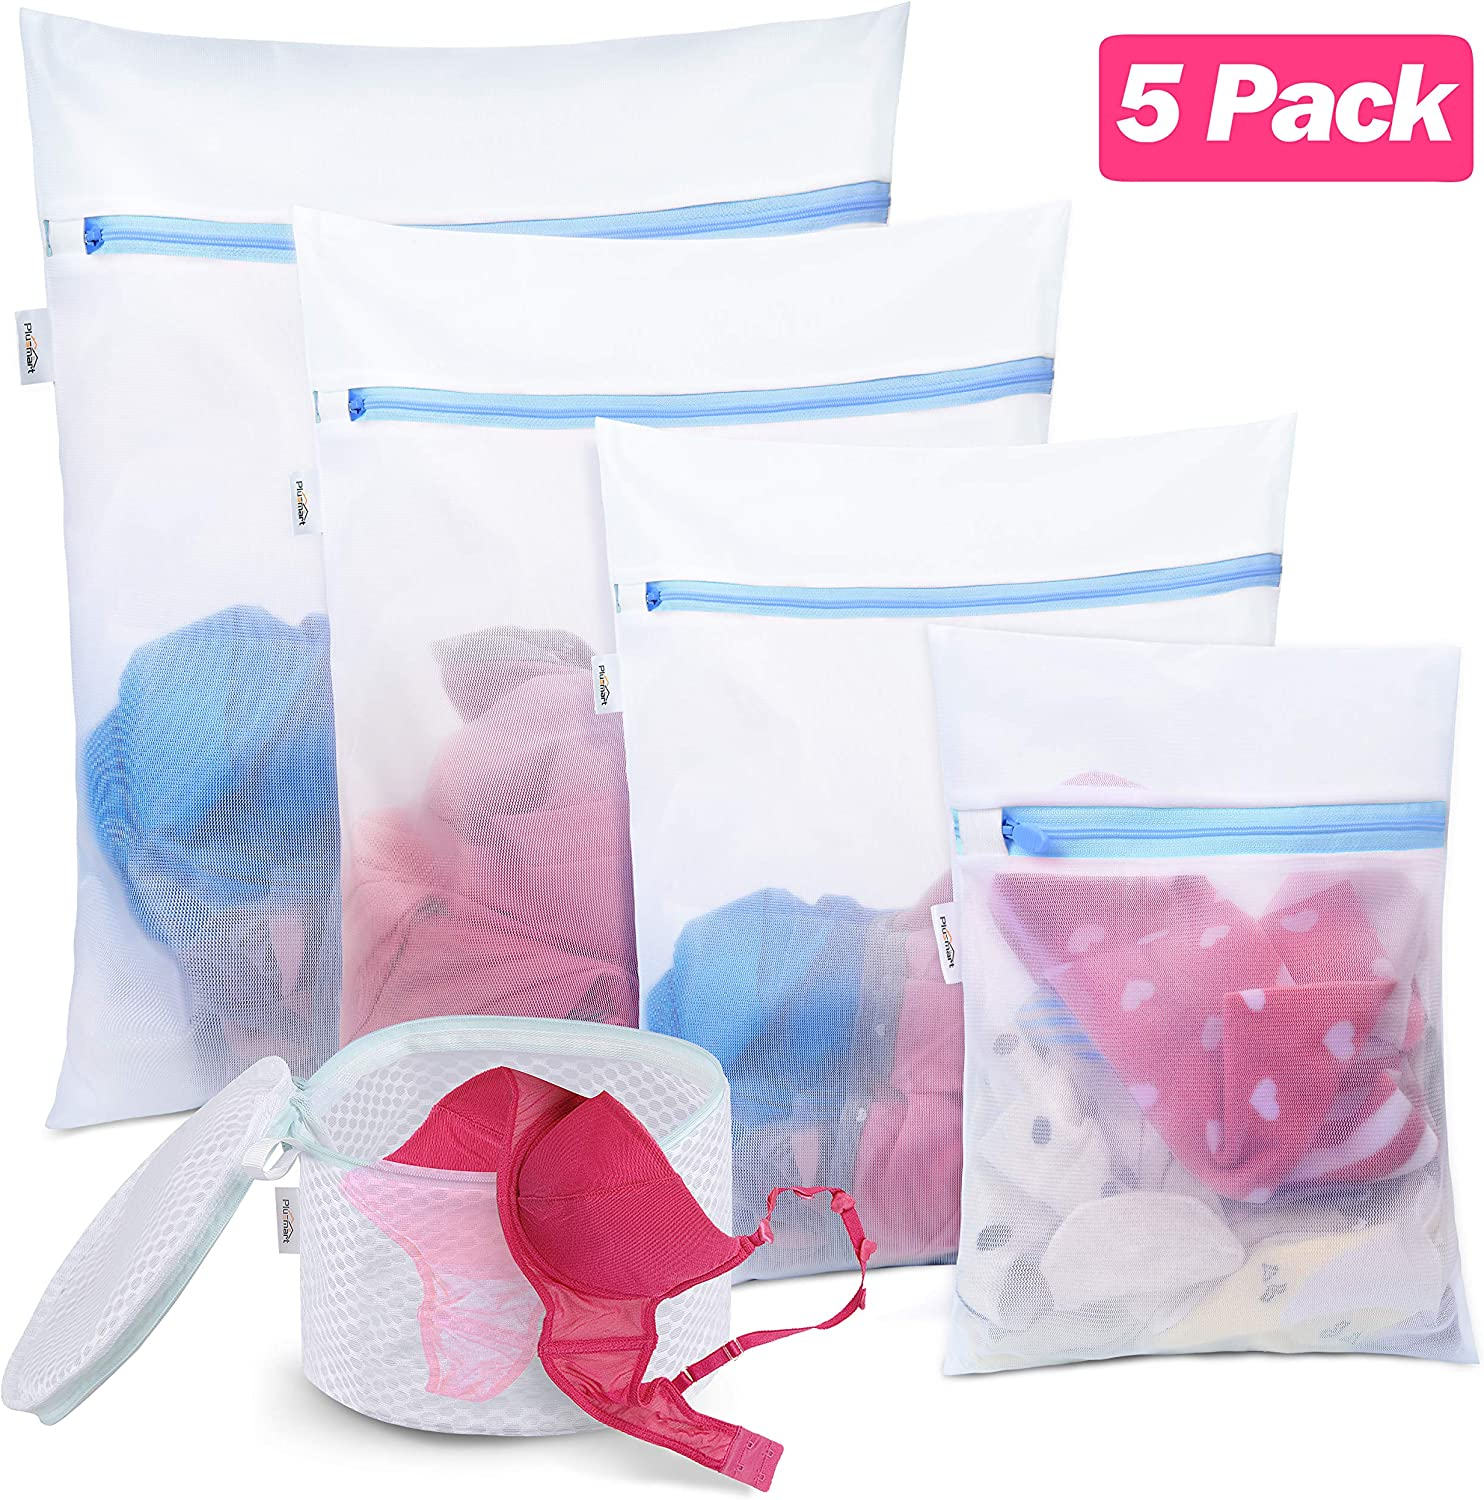 Plusmart 5 Pack Mesh Laundry Bags for delicates, Bra Lingerie Wash Bags, Zipper Travel Laundry Bag